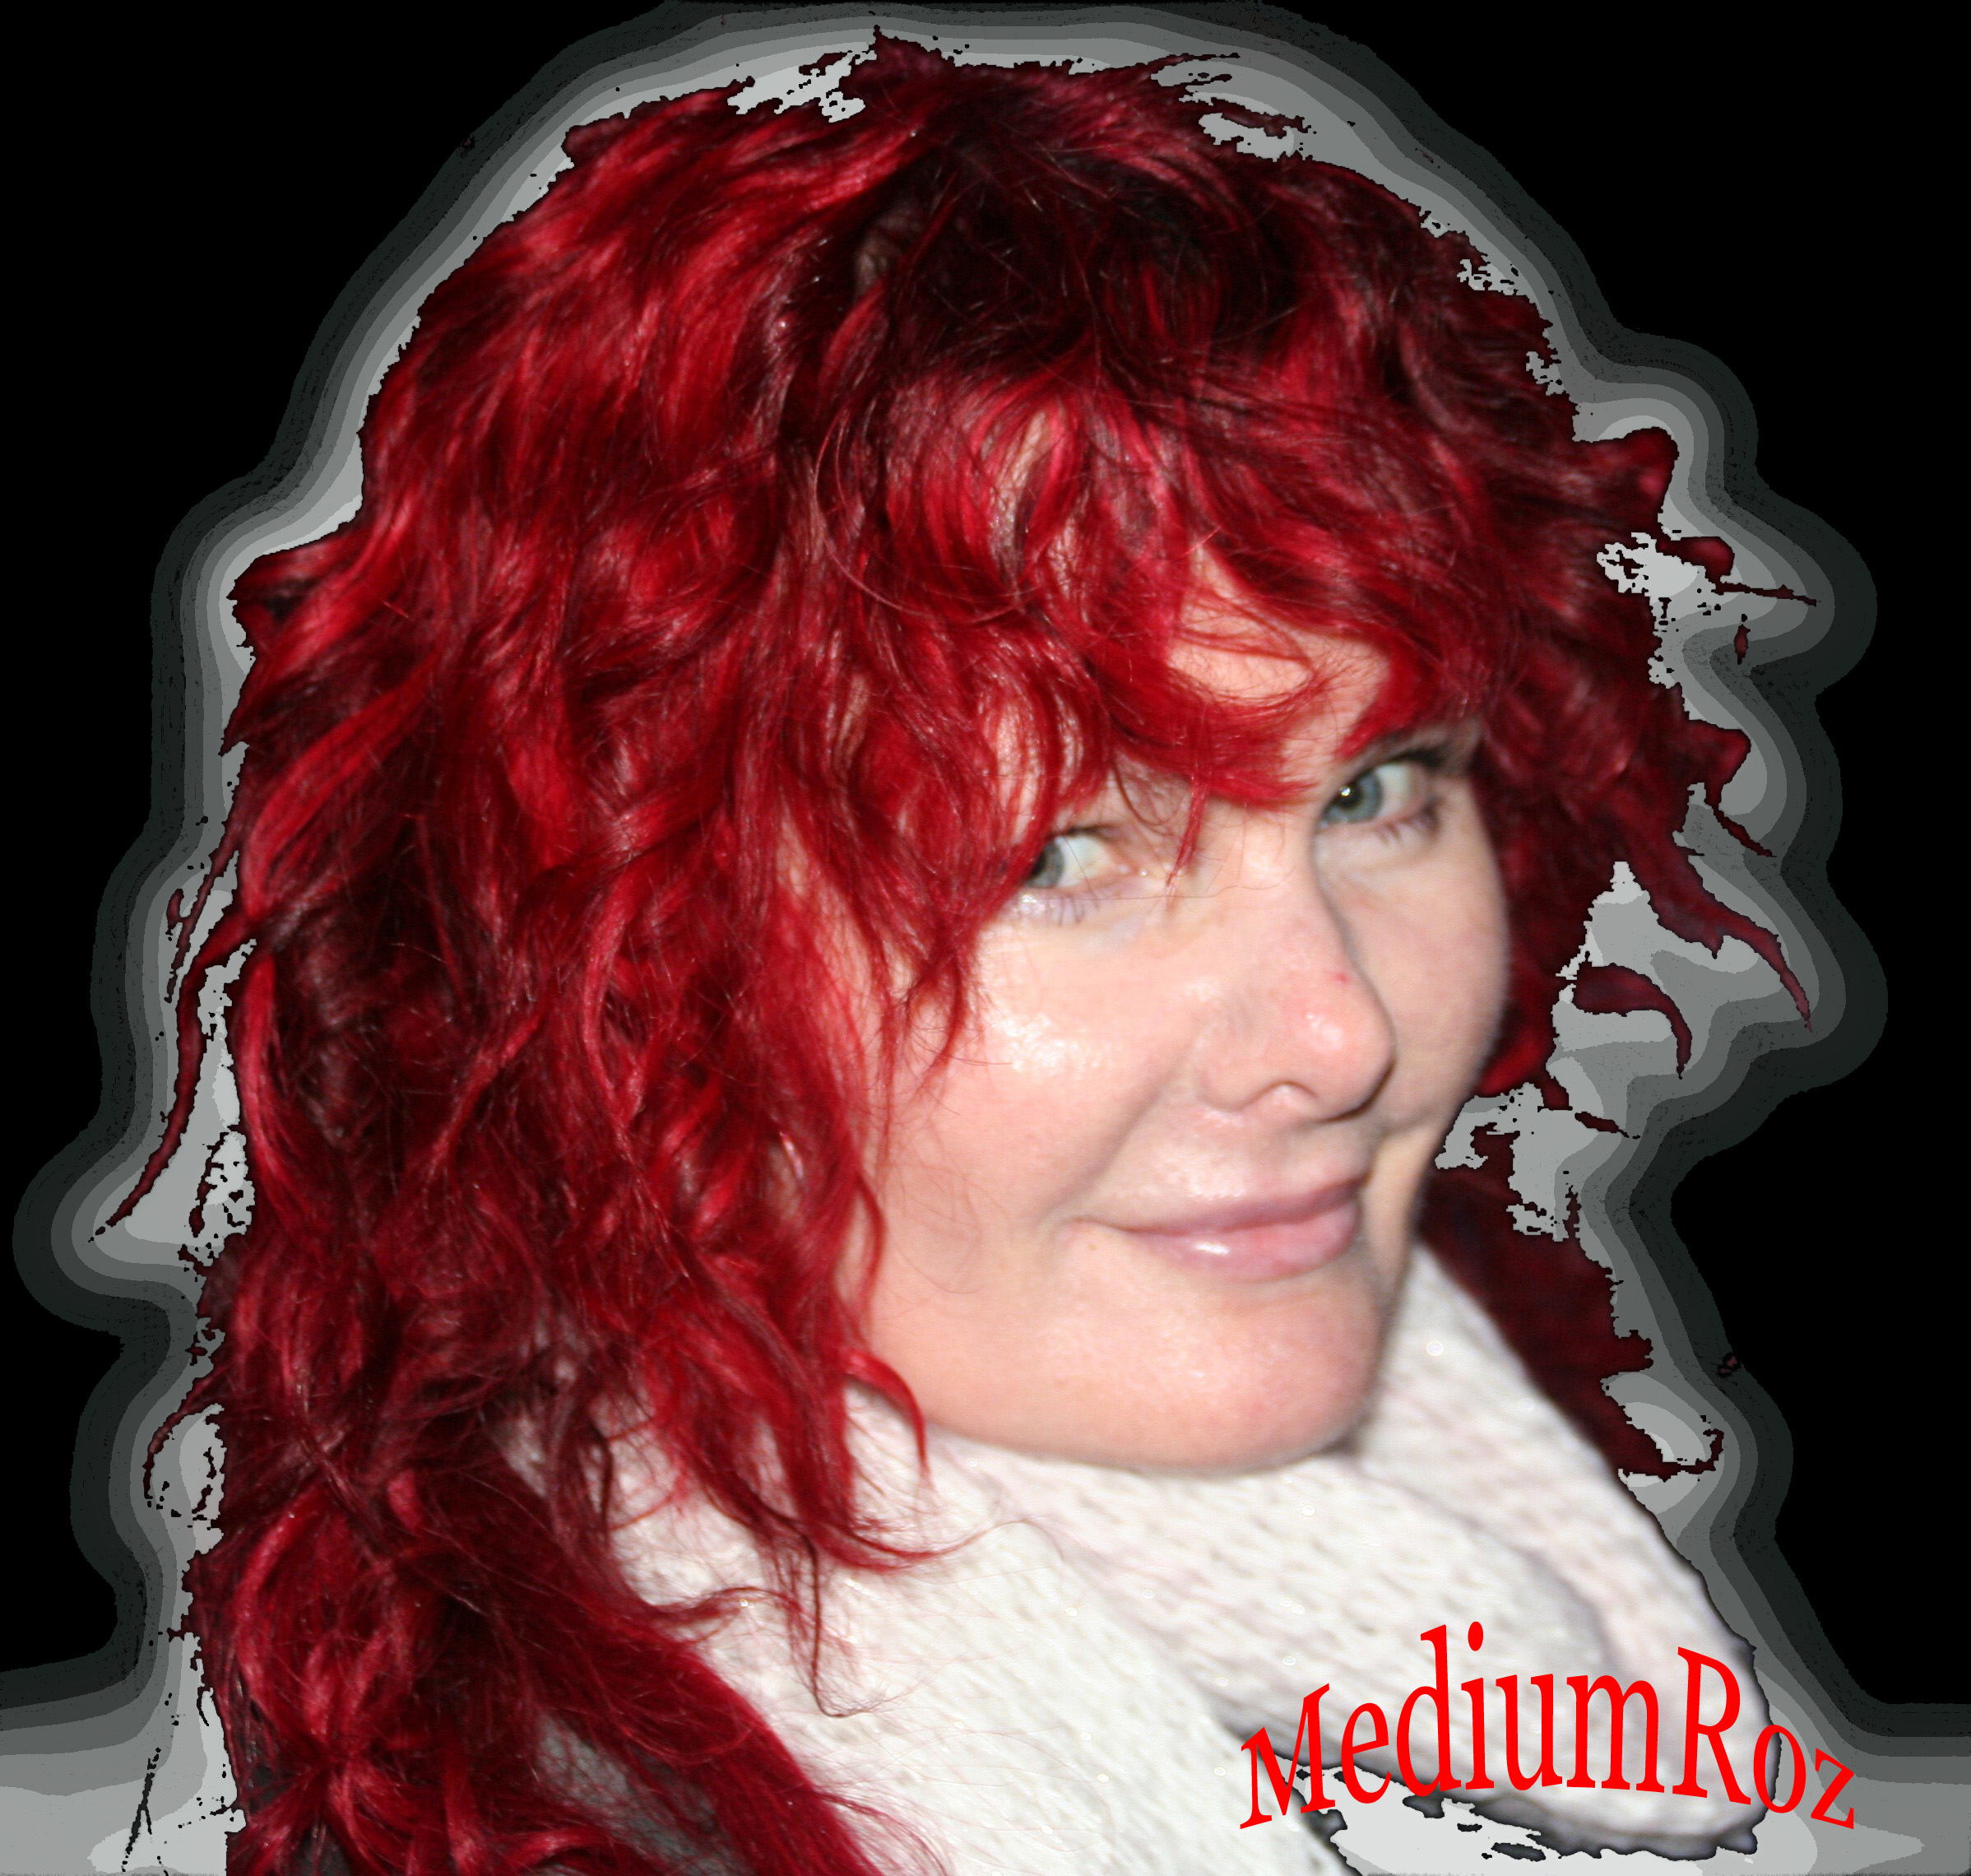 the psychic medium How to become a psychic medium psychic mediums have the ability to sense  and communicate with beings and energies in other dimensions, including the.